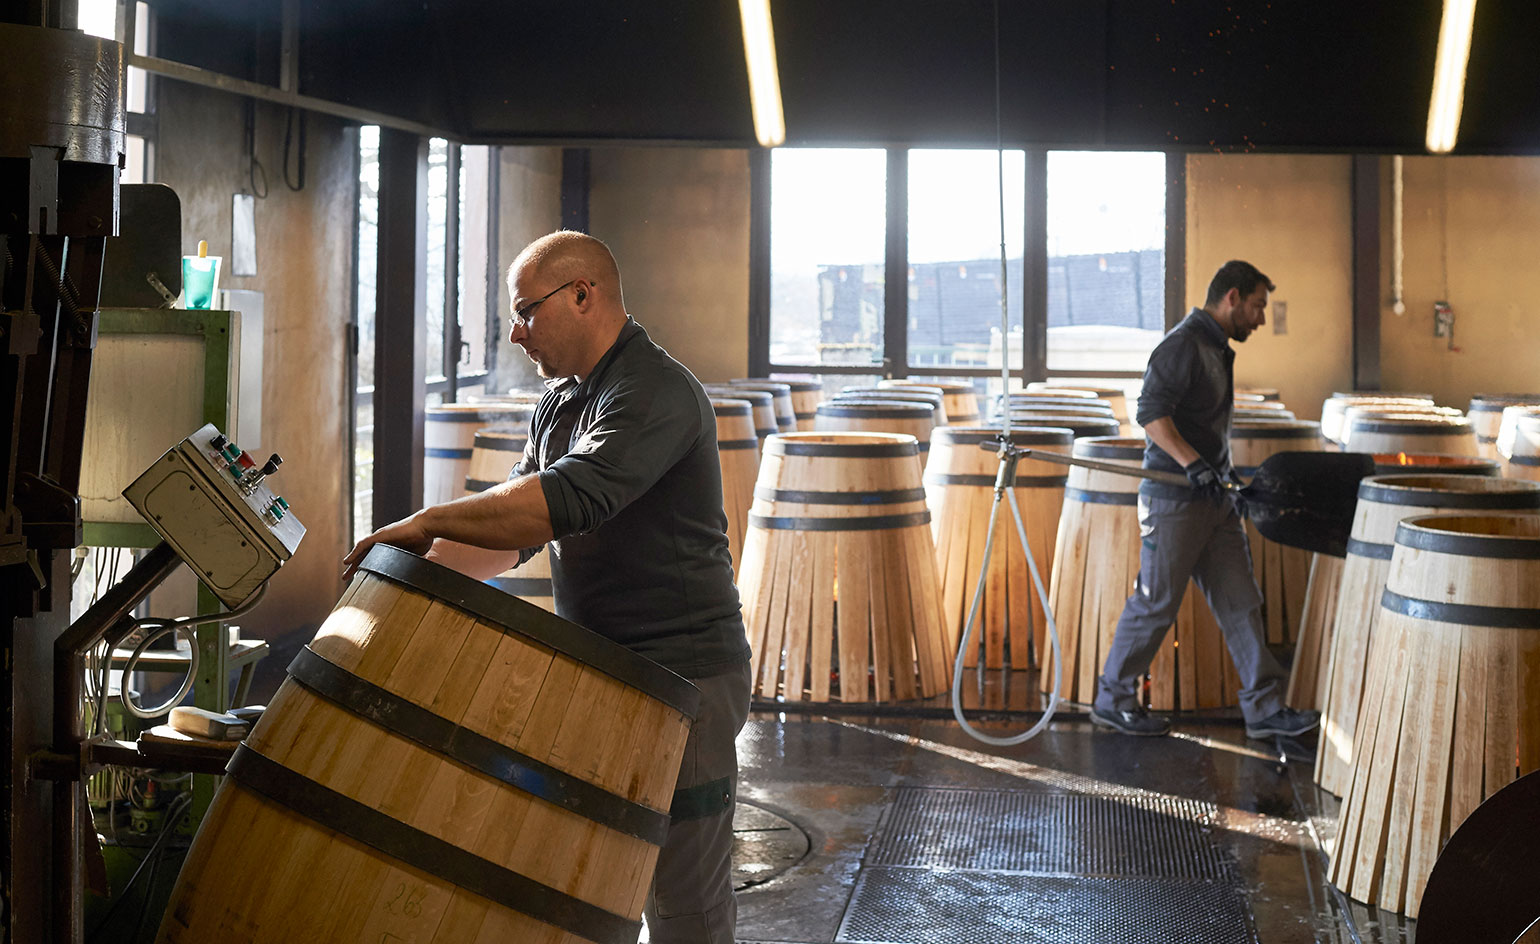 From grain to grape the Margaritelli family journey from Italian flooring to an organic winery